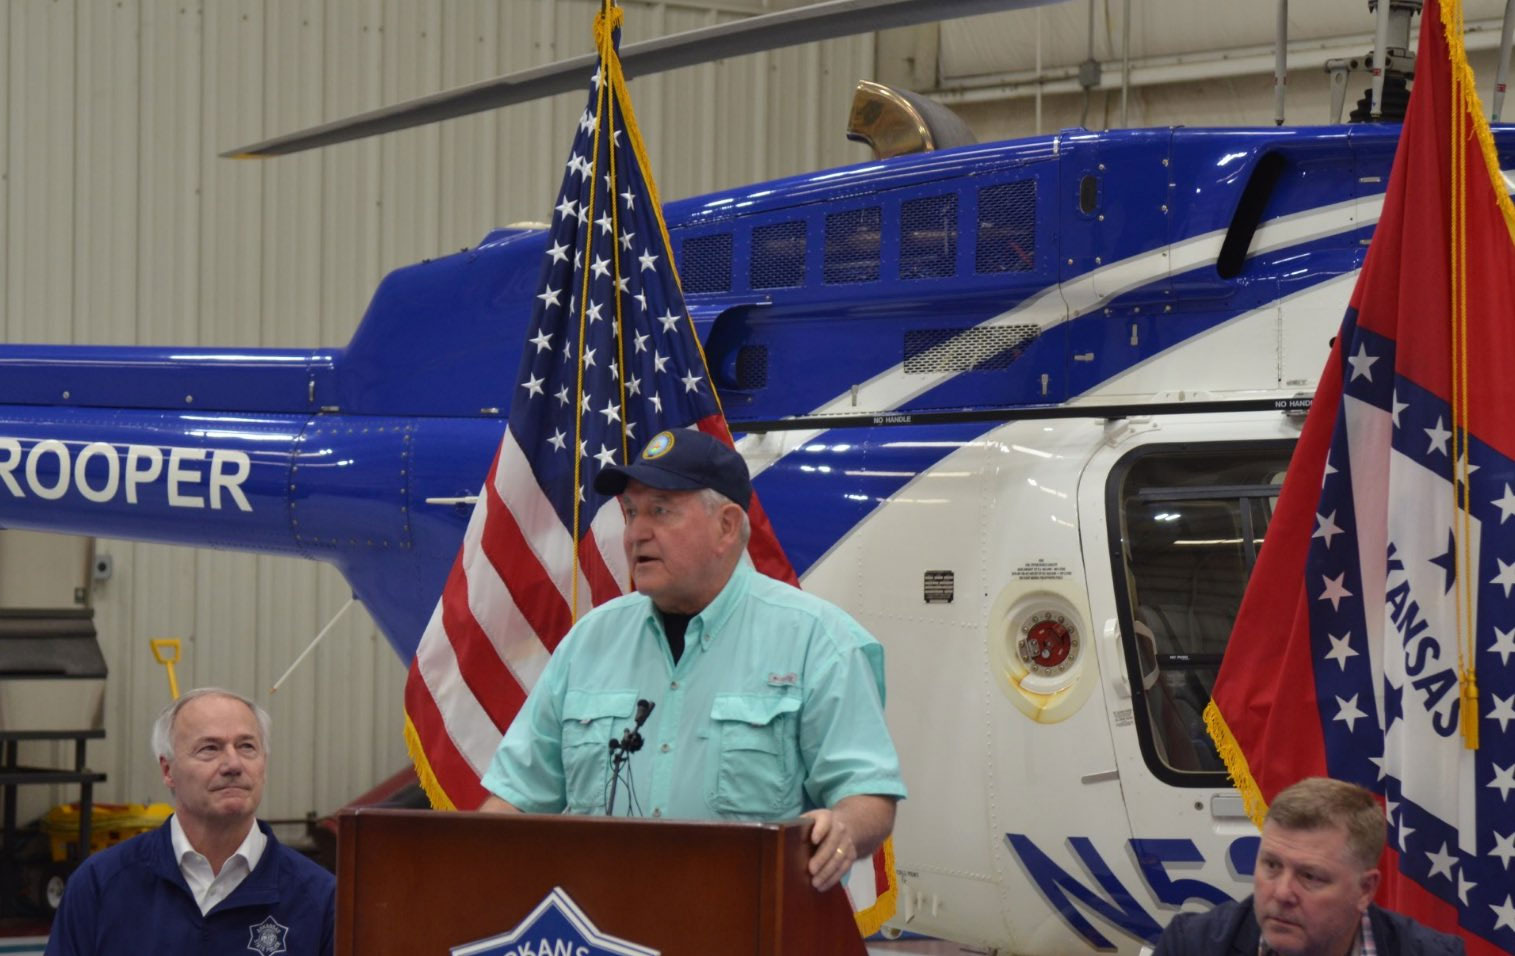 Secretary of Ag Sonny-Perdue-standing in front of rescue helicopter during press conference about 2017 AR flood